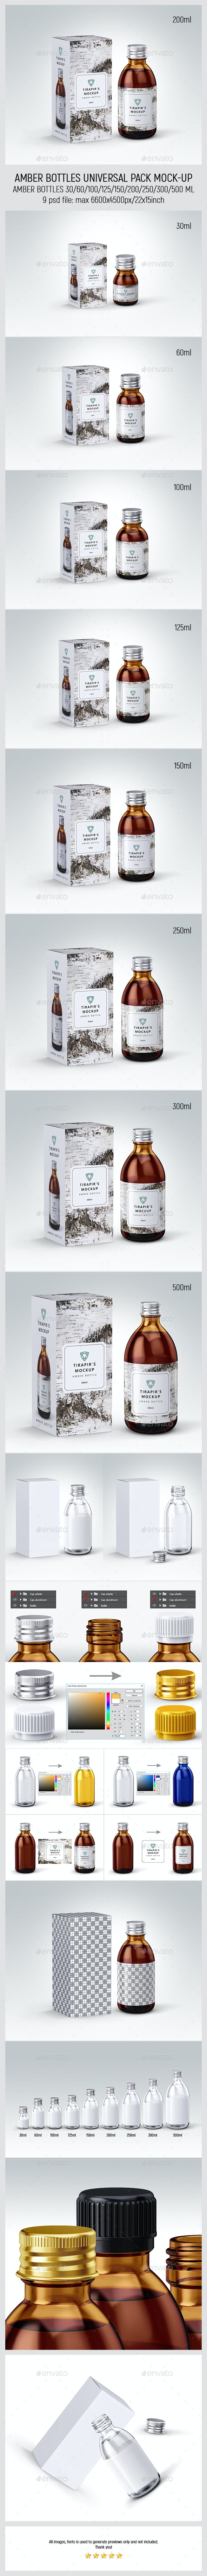 Amber Bottles Universal Pack Mock-up - Miscellaneous Packaging